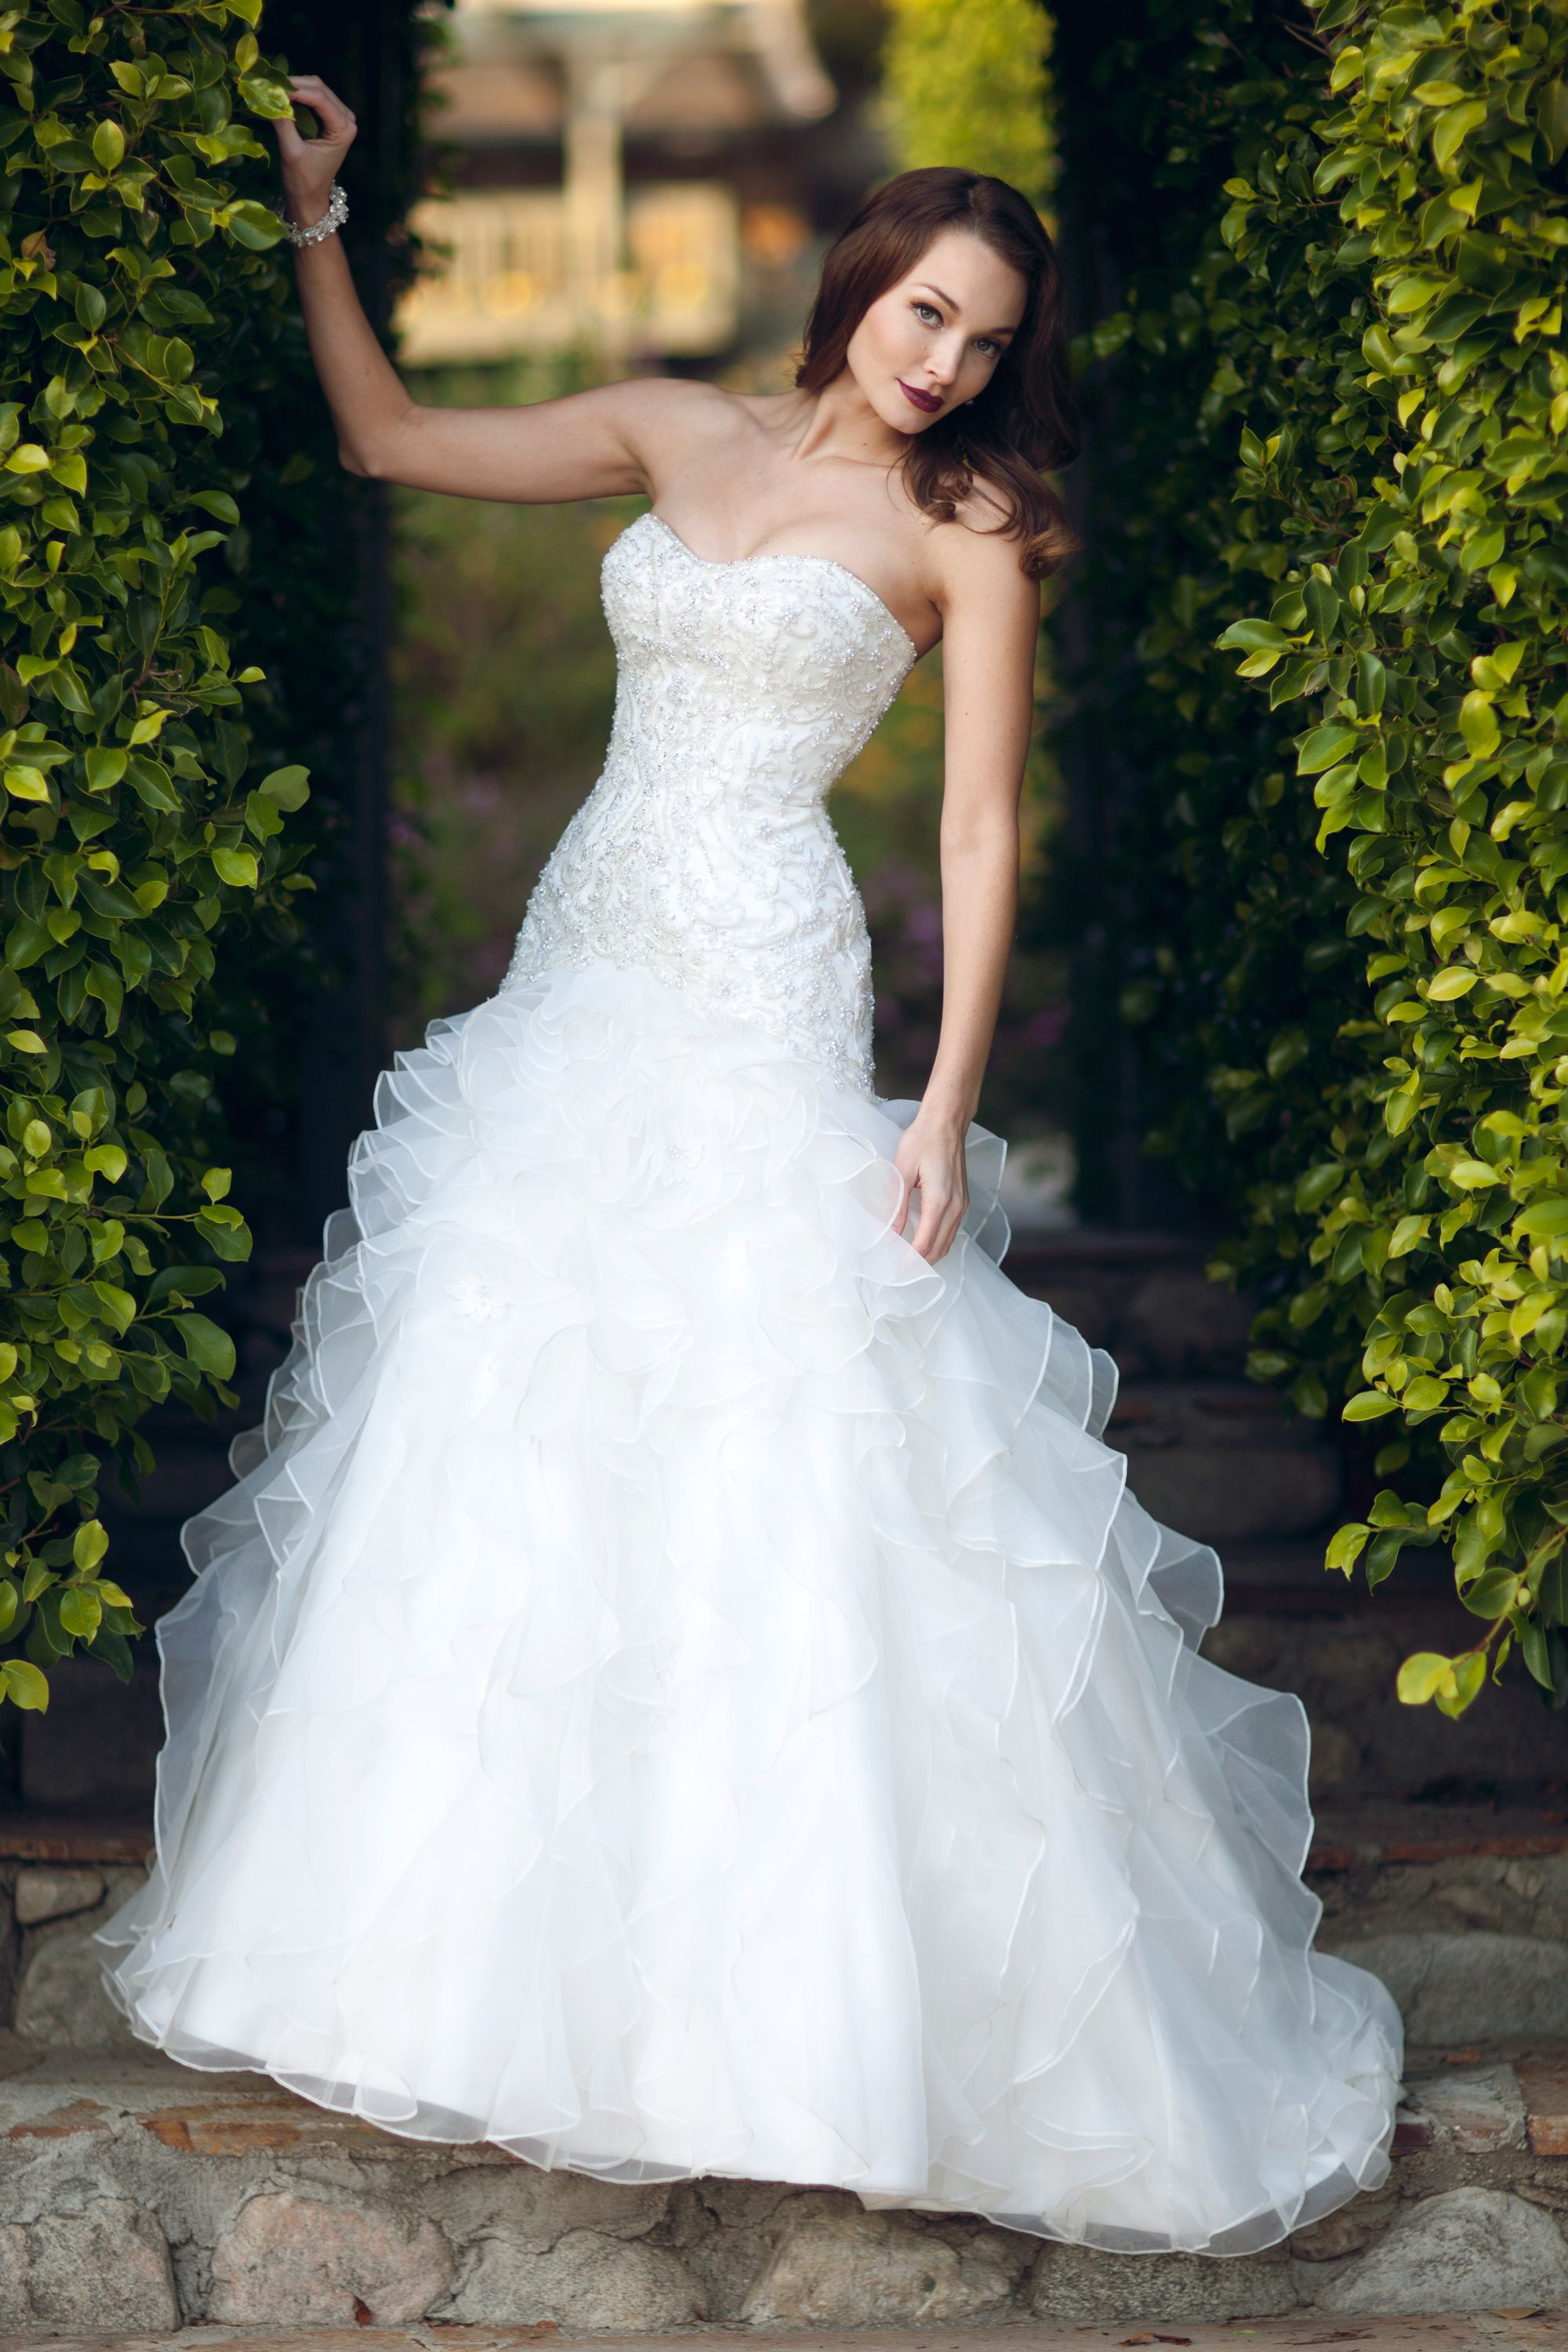 See through corset wedding dresses  Kenneth Winston Style   Ideas for the home  Pinterest  Weddings